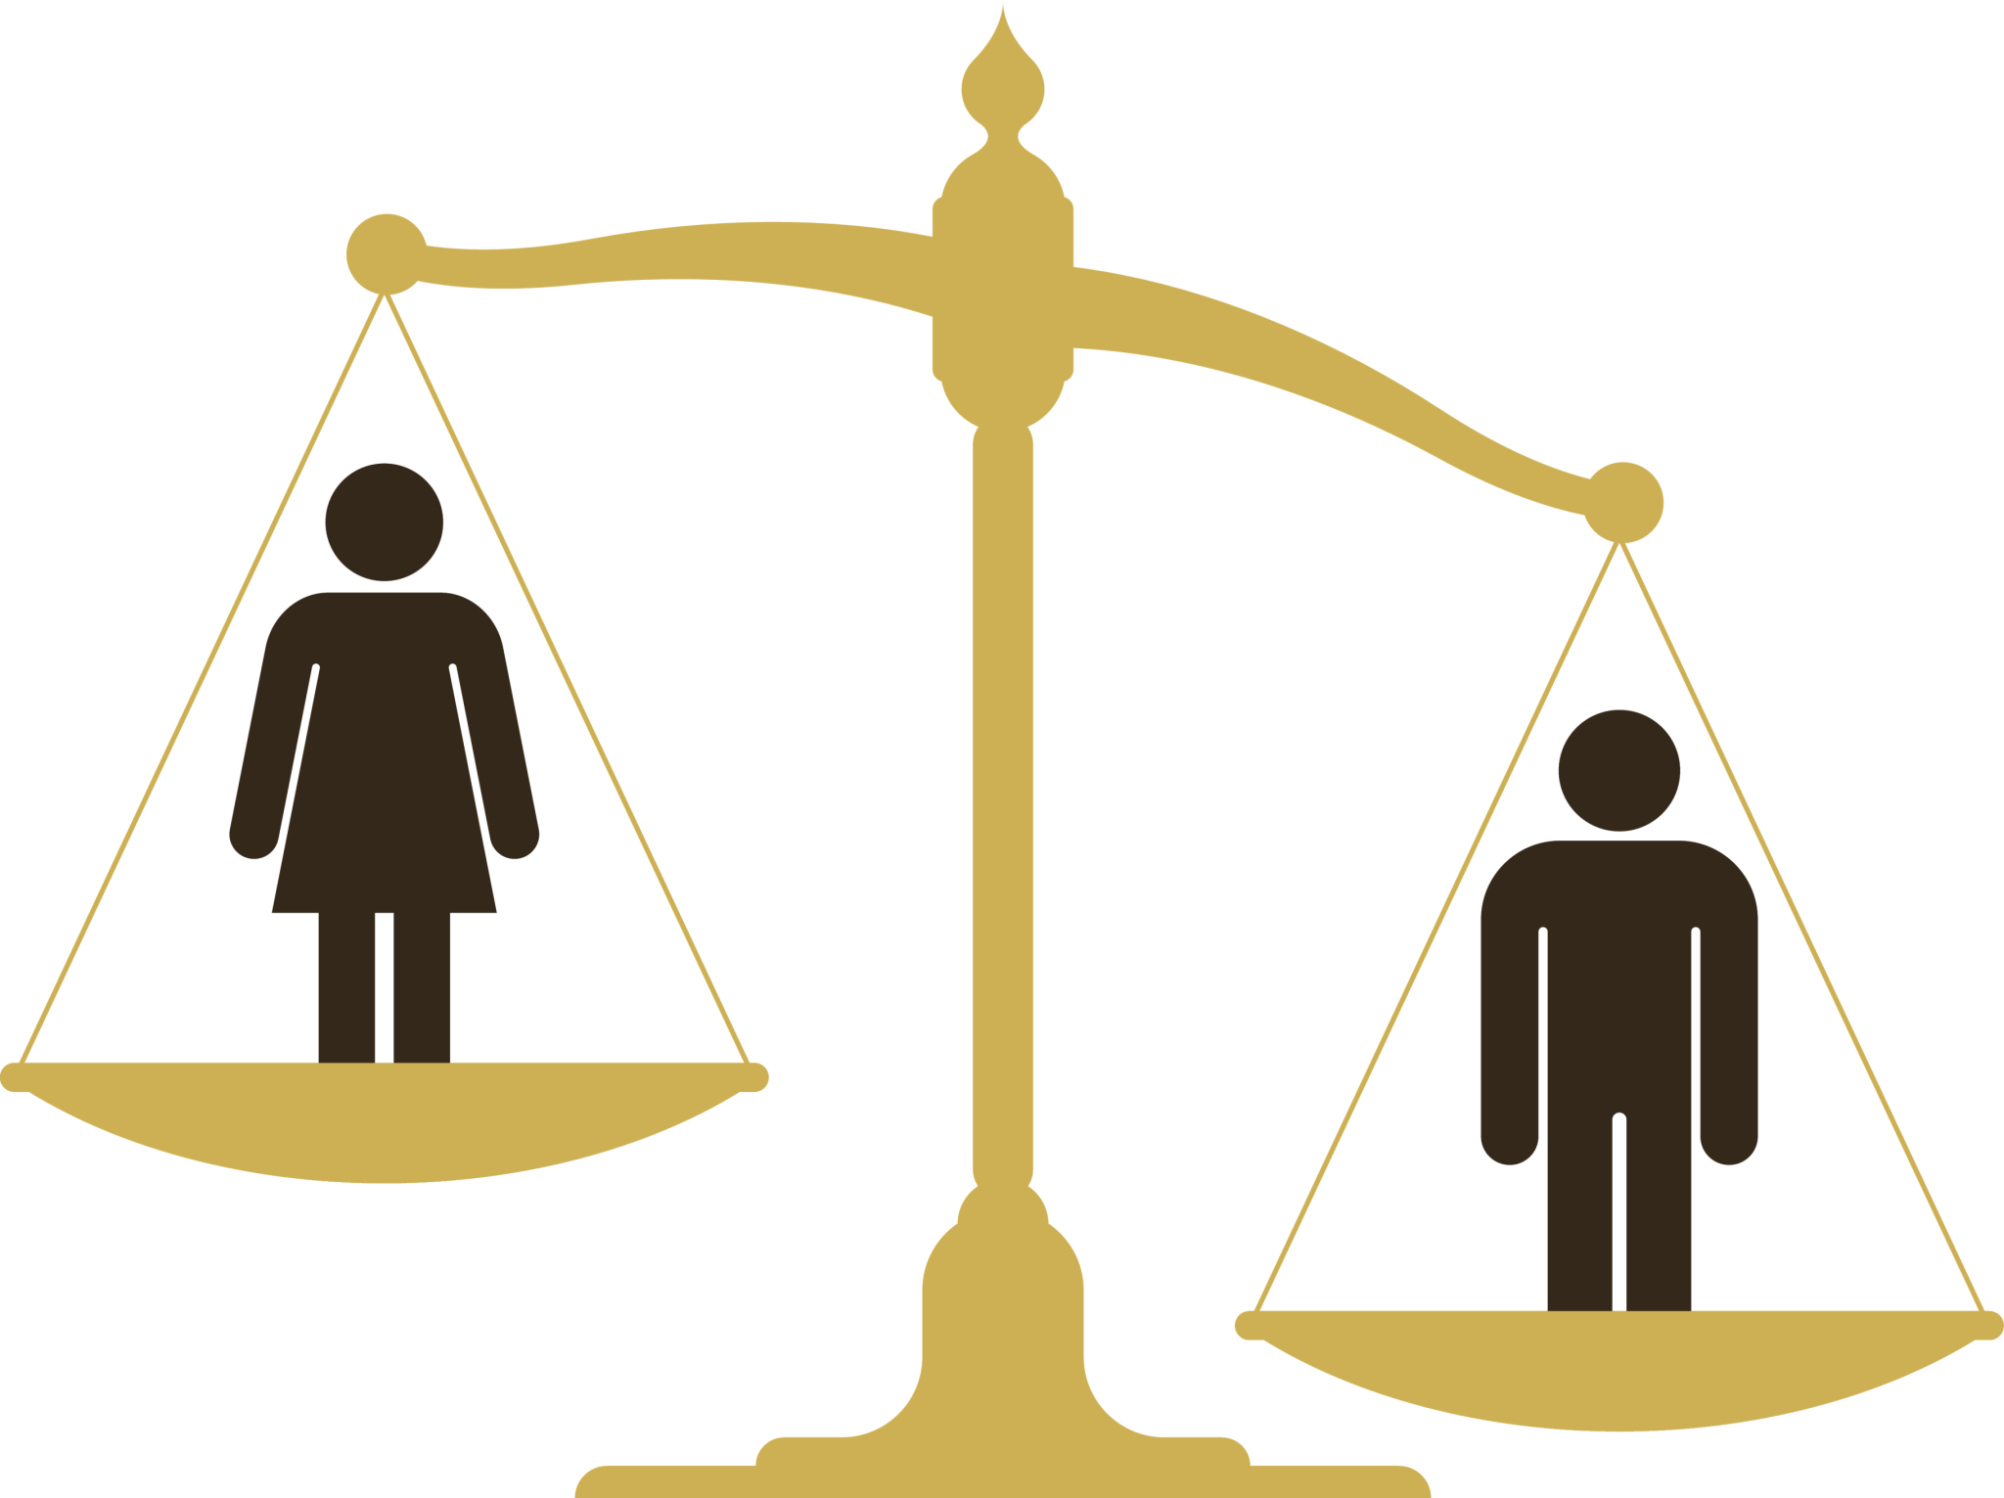 an examination of gender equality through the factors of biology and society Gender equality signifies a society in which men and women enjoy gender bias, gender discrimination, gender equality retrieved gender through the prism of.